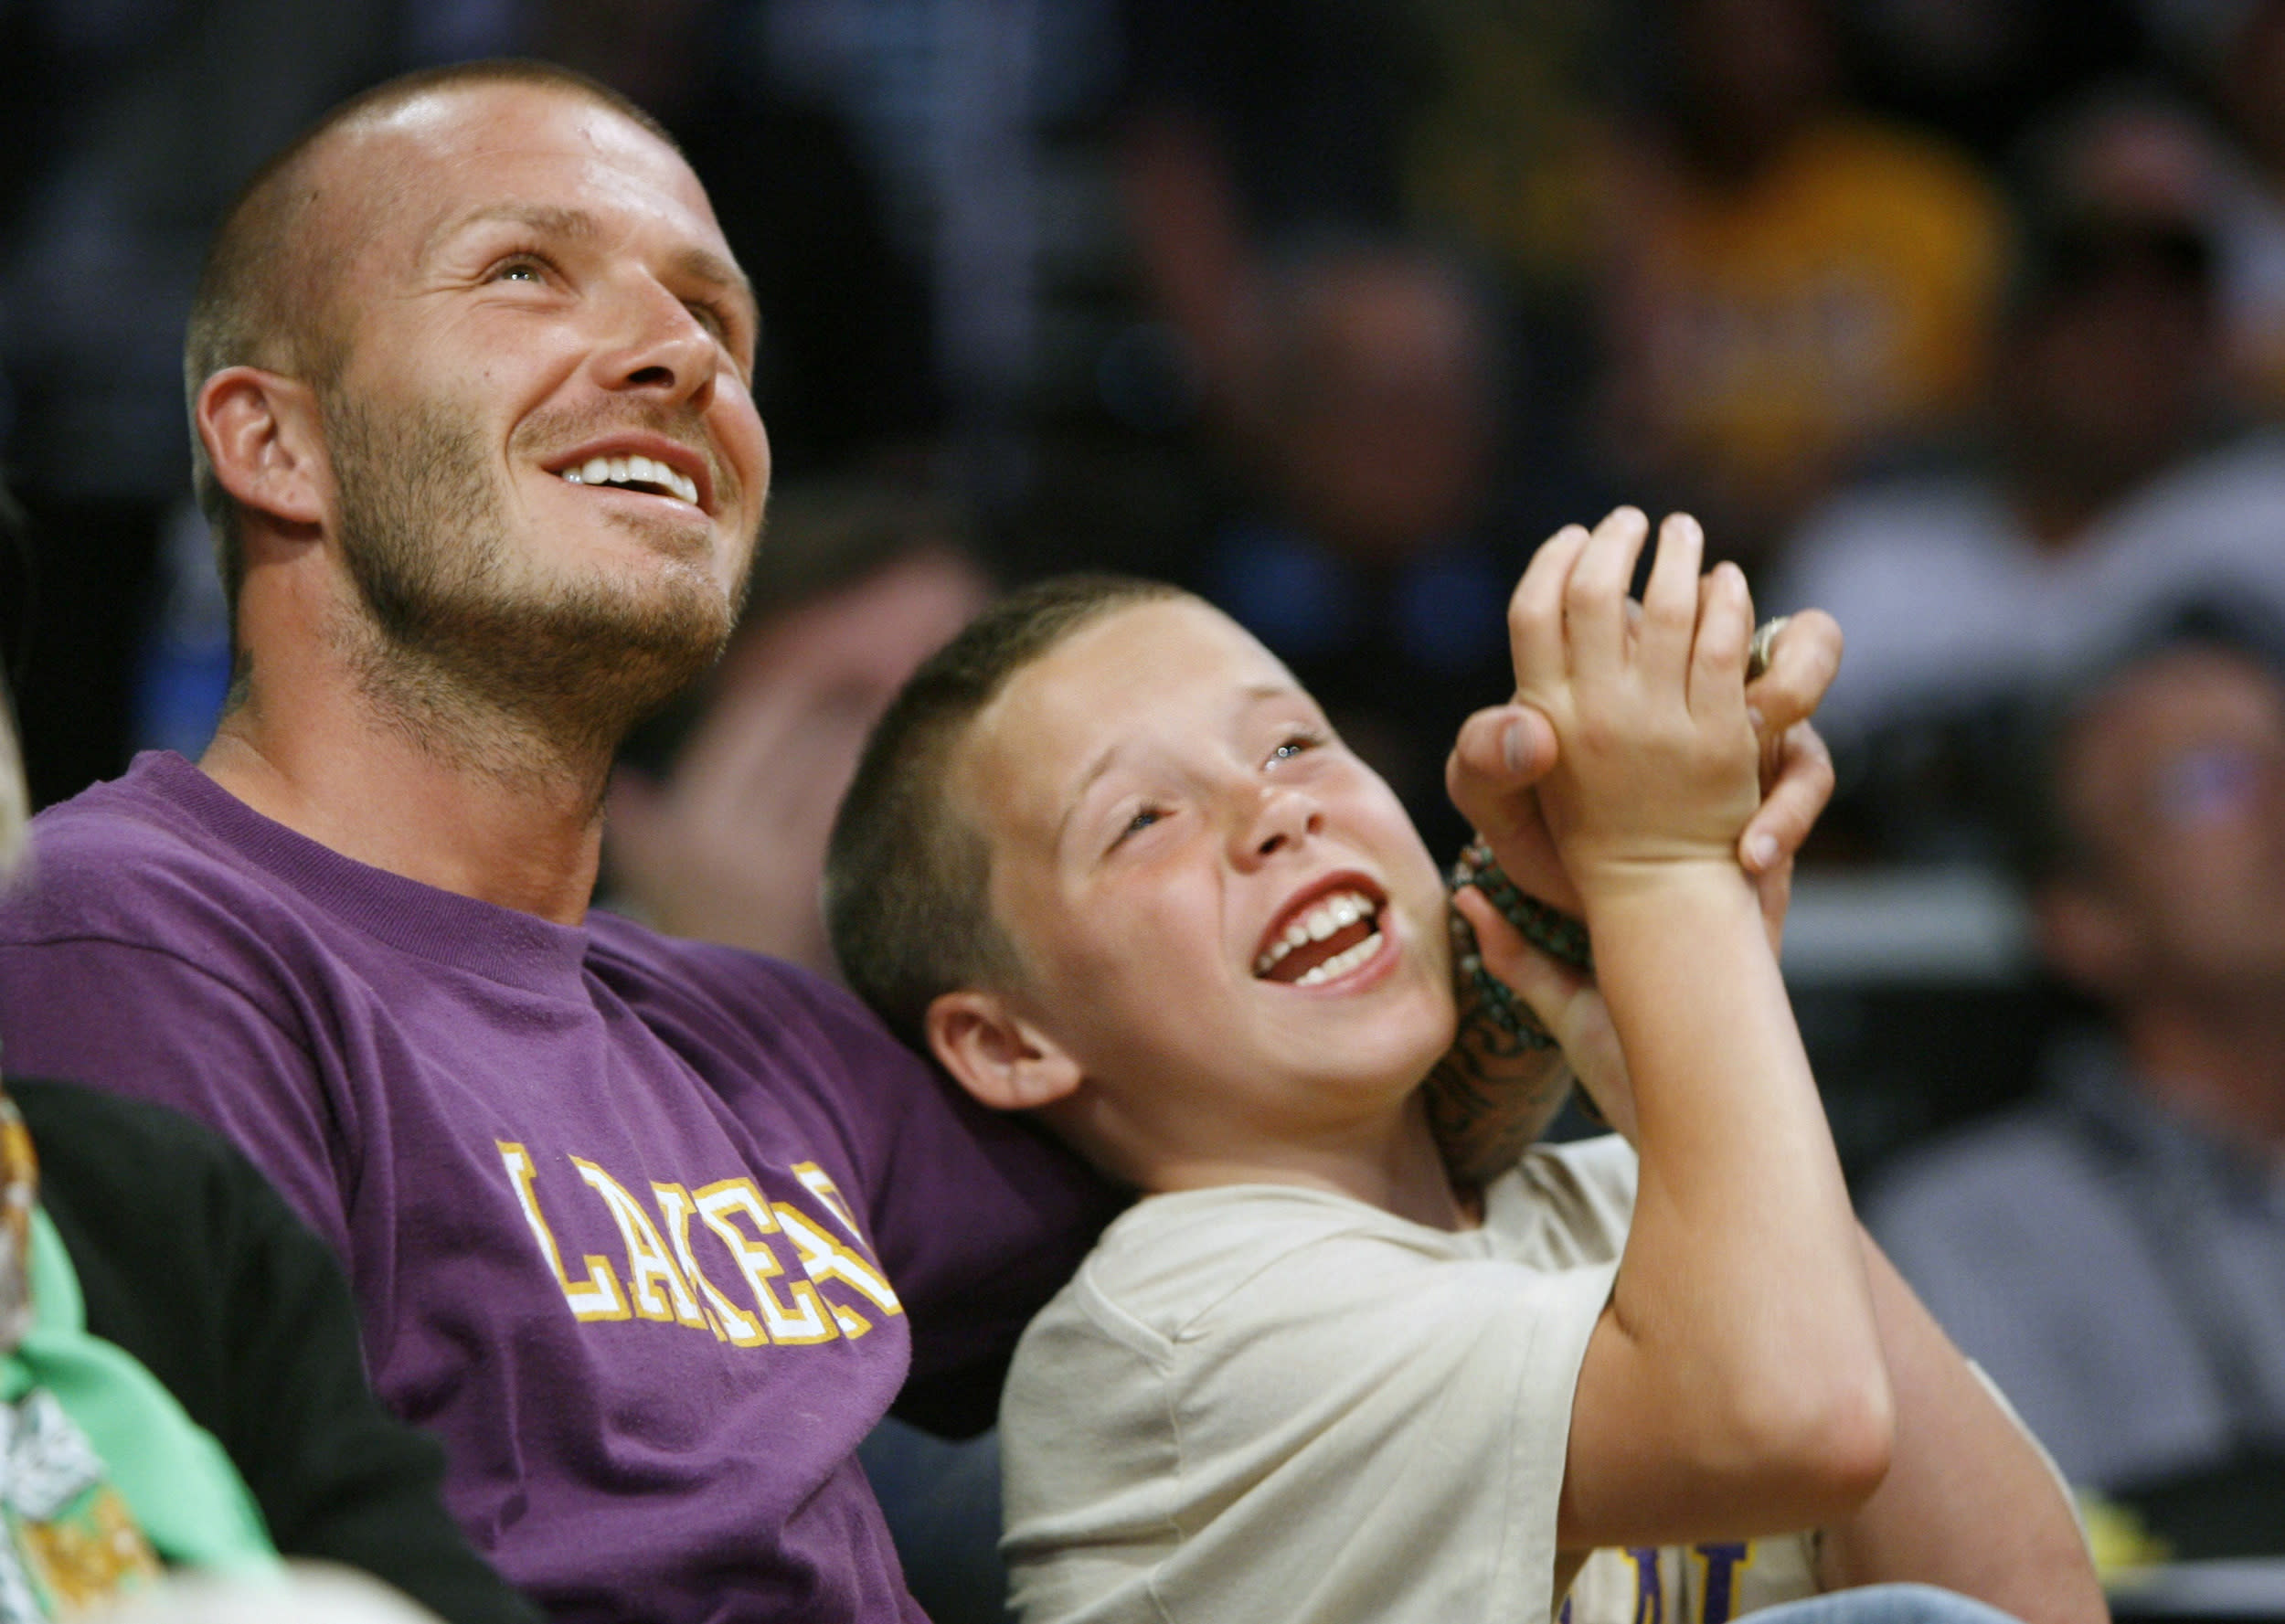 Soccer star David Beckham sits with his son Brooklyn while the Los Angeles Lakers play the Boston Celtics during Game 3 of the NBA Finals basketball championship in Los Angeles, June 10, 2008.     REUTERS/Jeff Haynes (UNITED STATES)